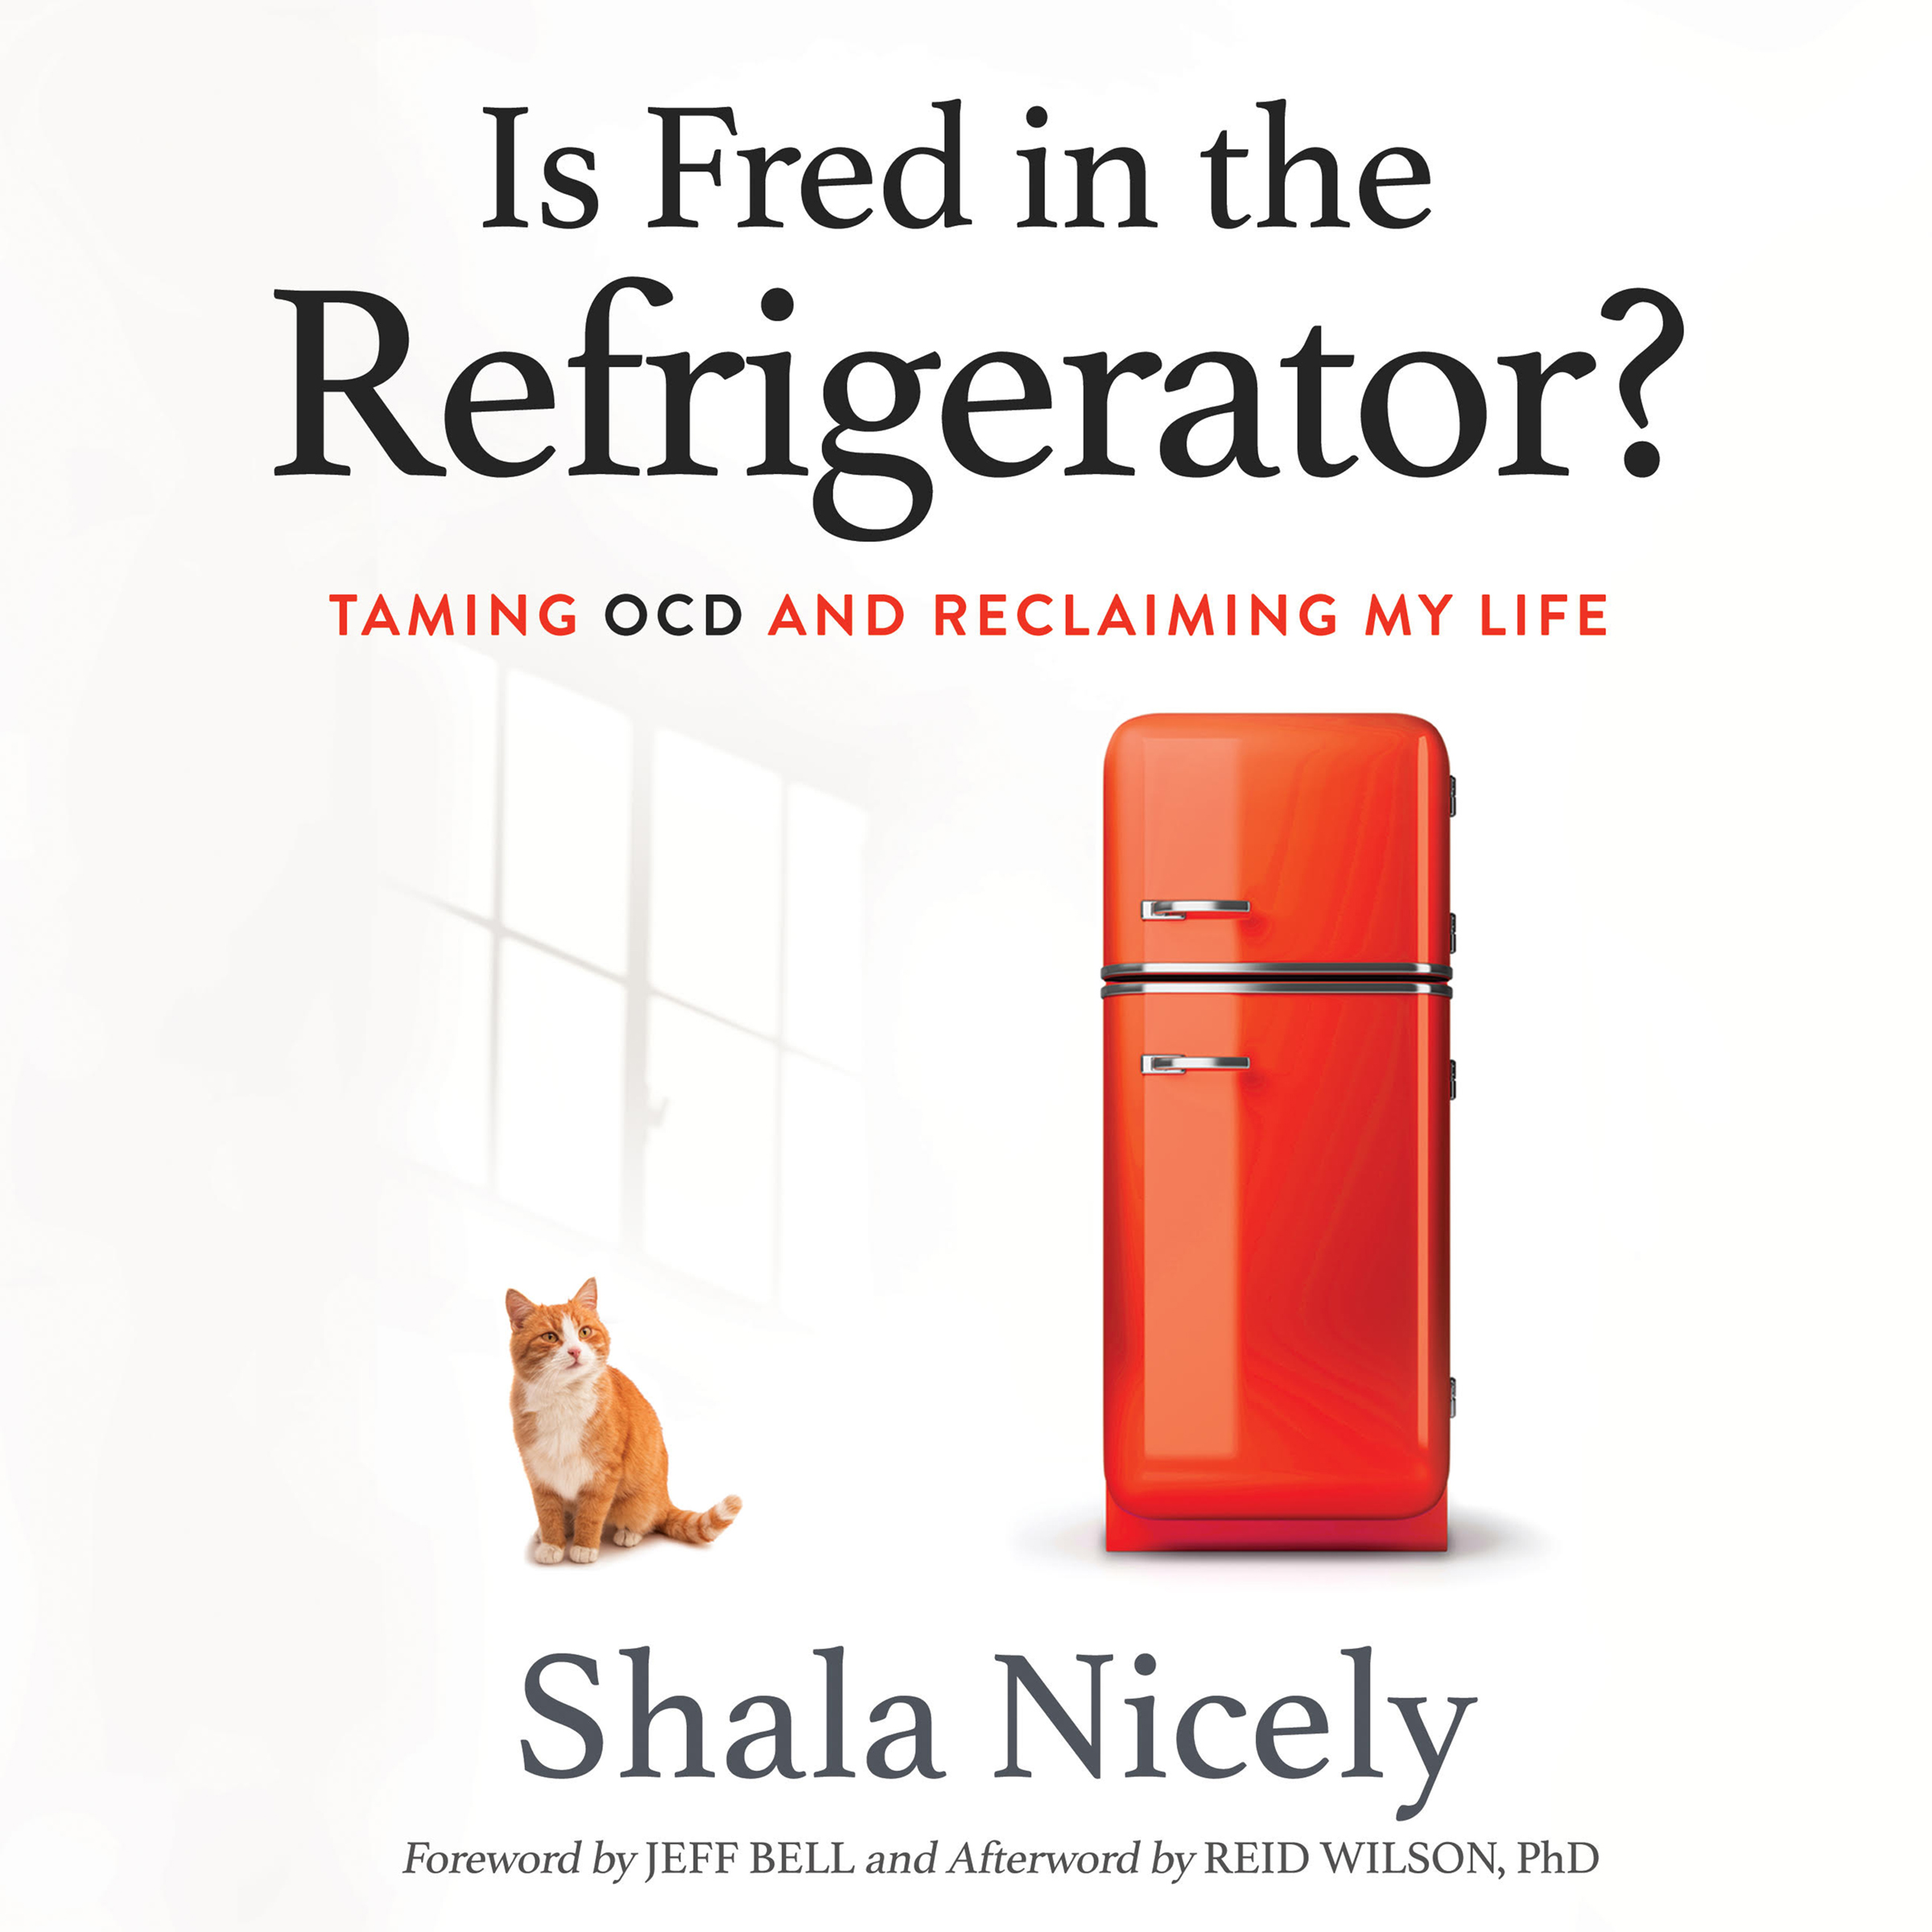 Is Fred in the Refrigerator?